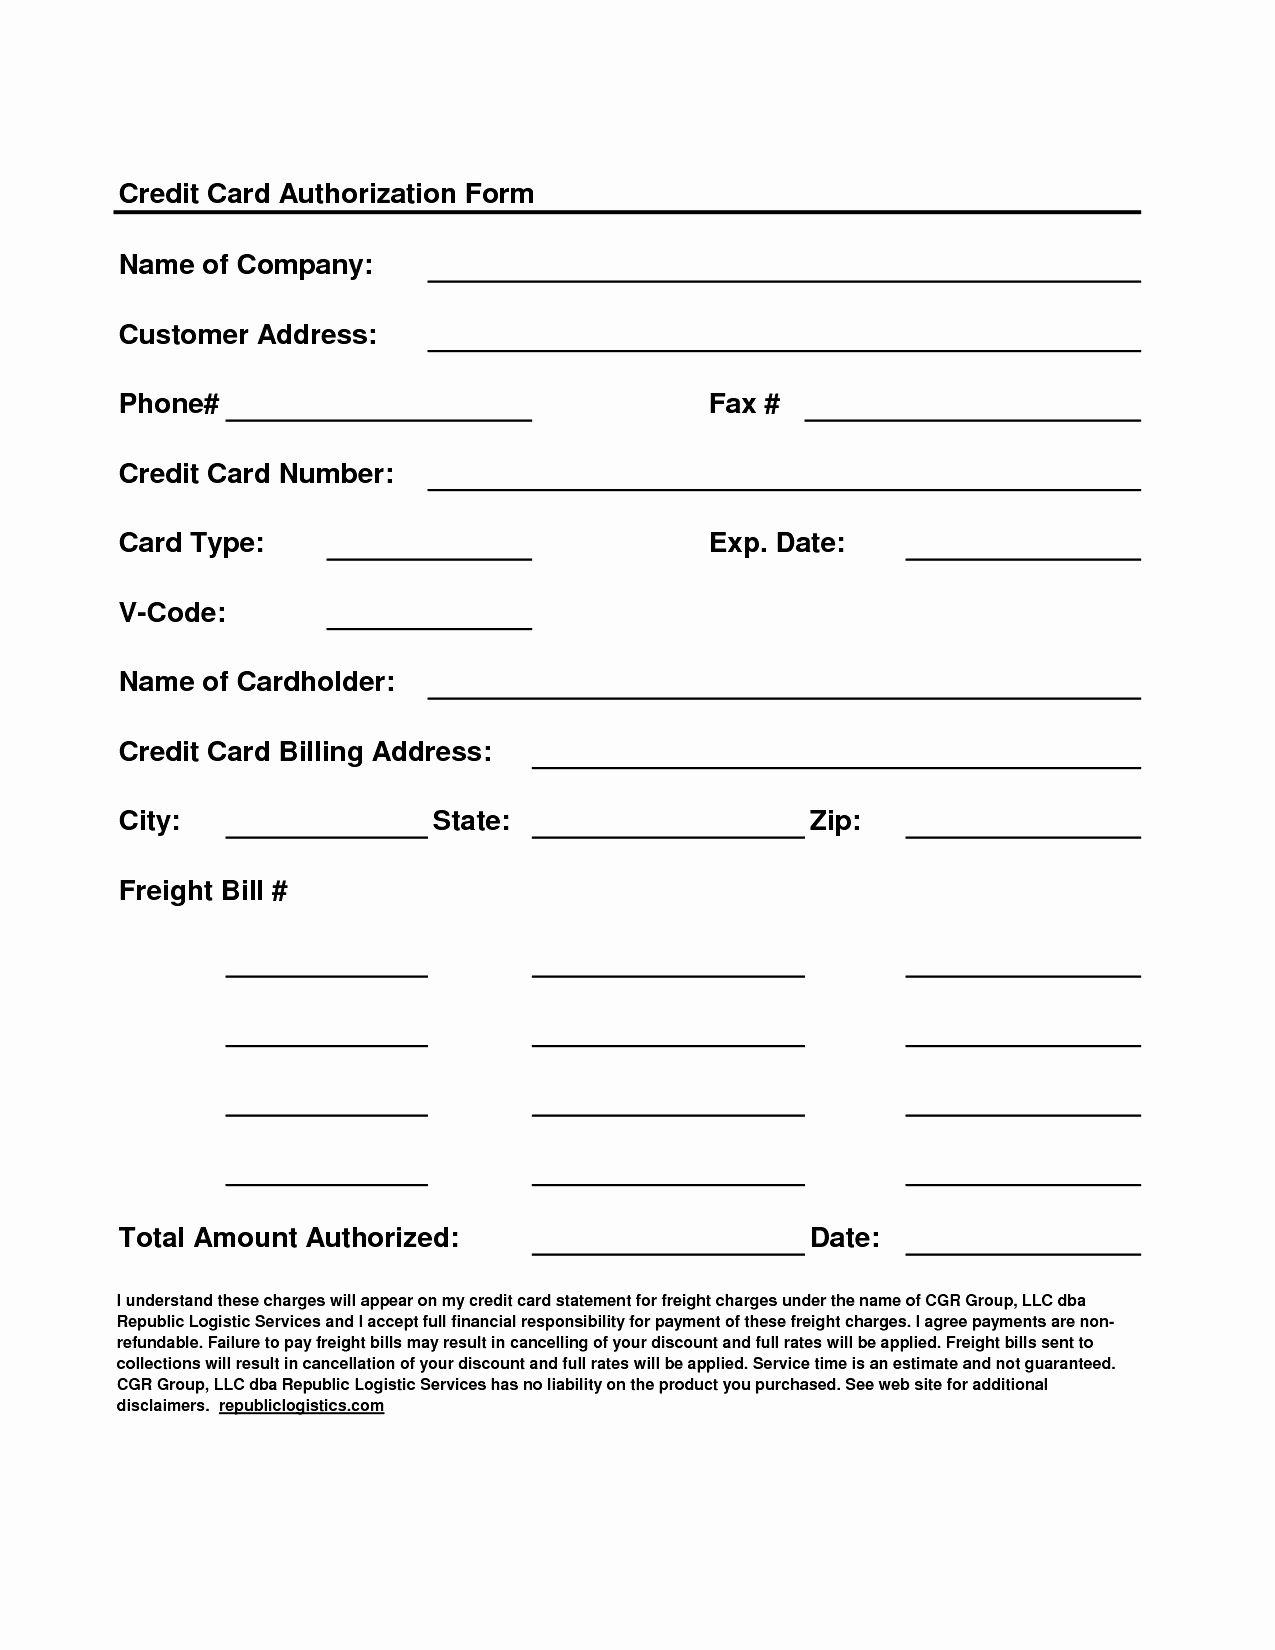 50 awesome credit card authorization form template in 2020